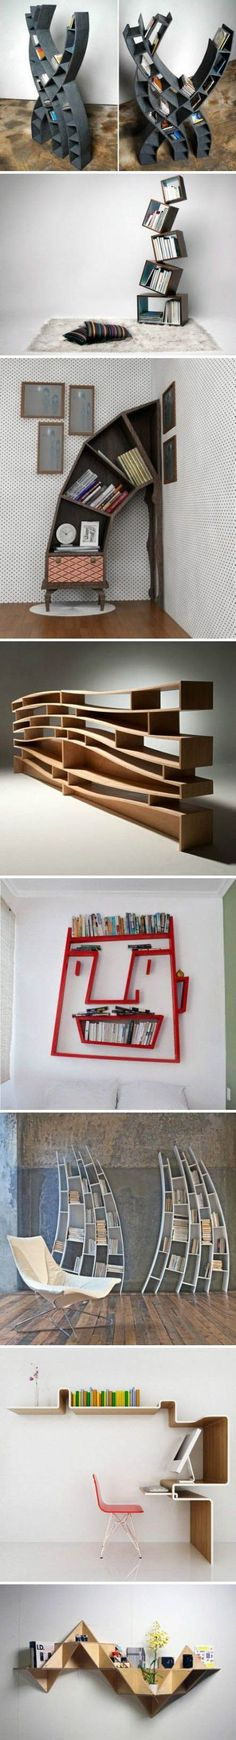 Cool Bookshelf | DIY Crafts Tutorials